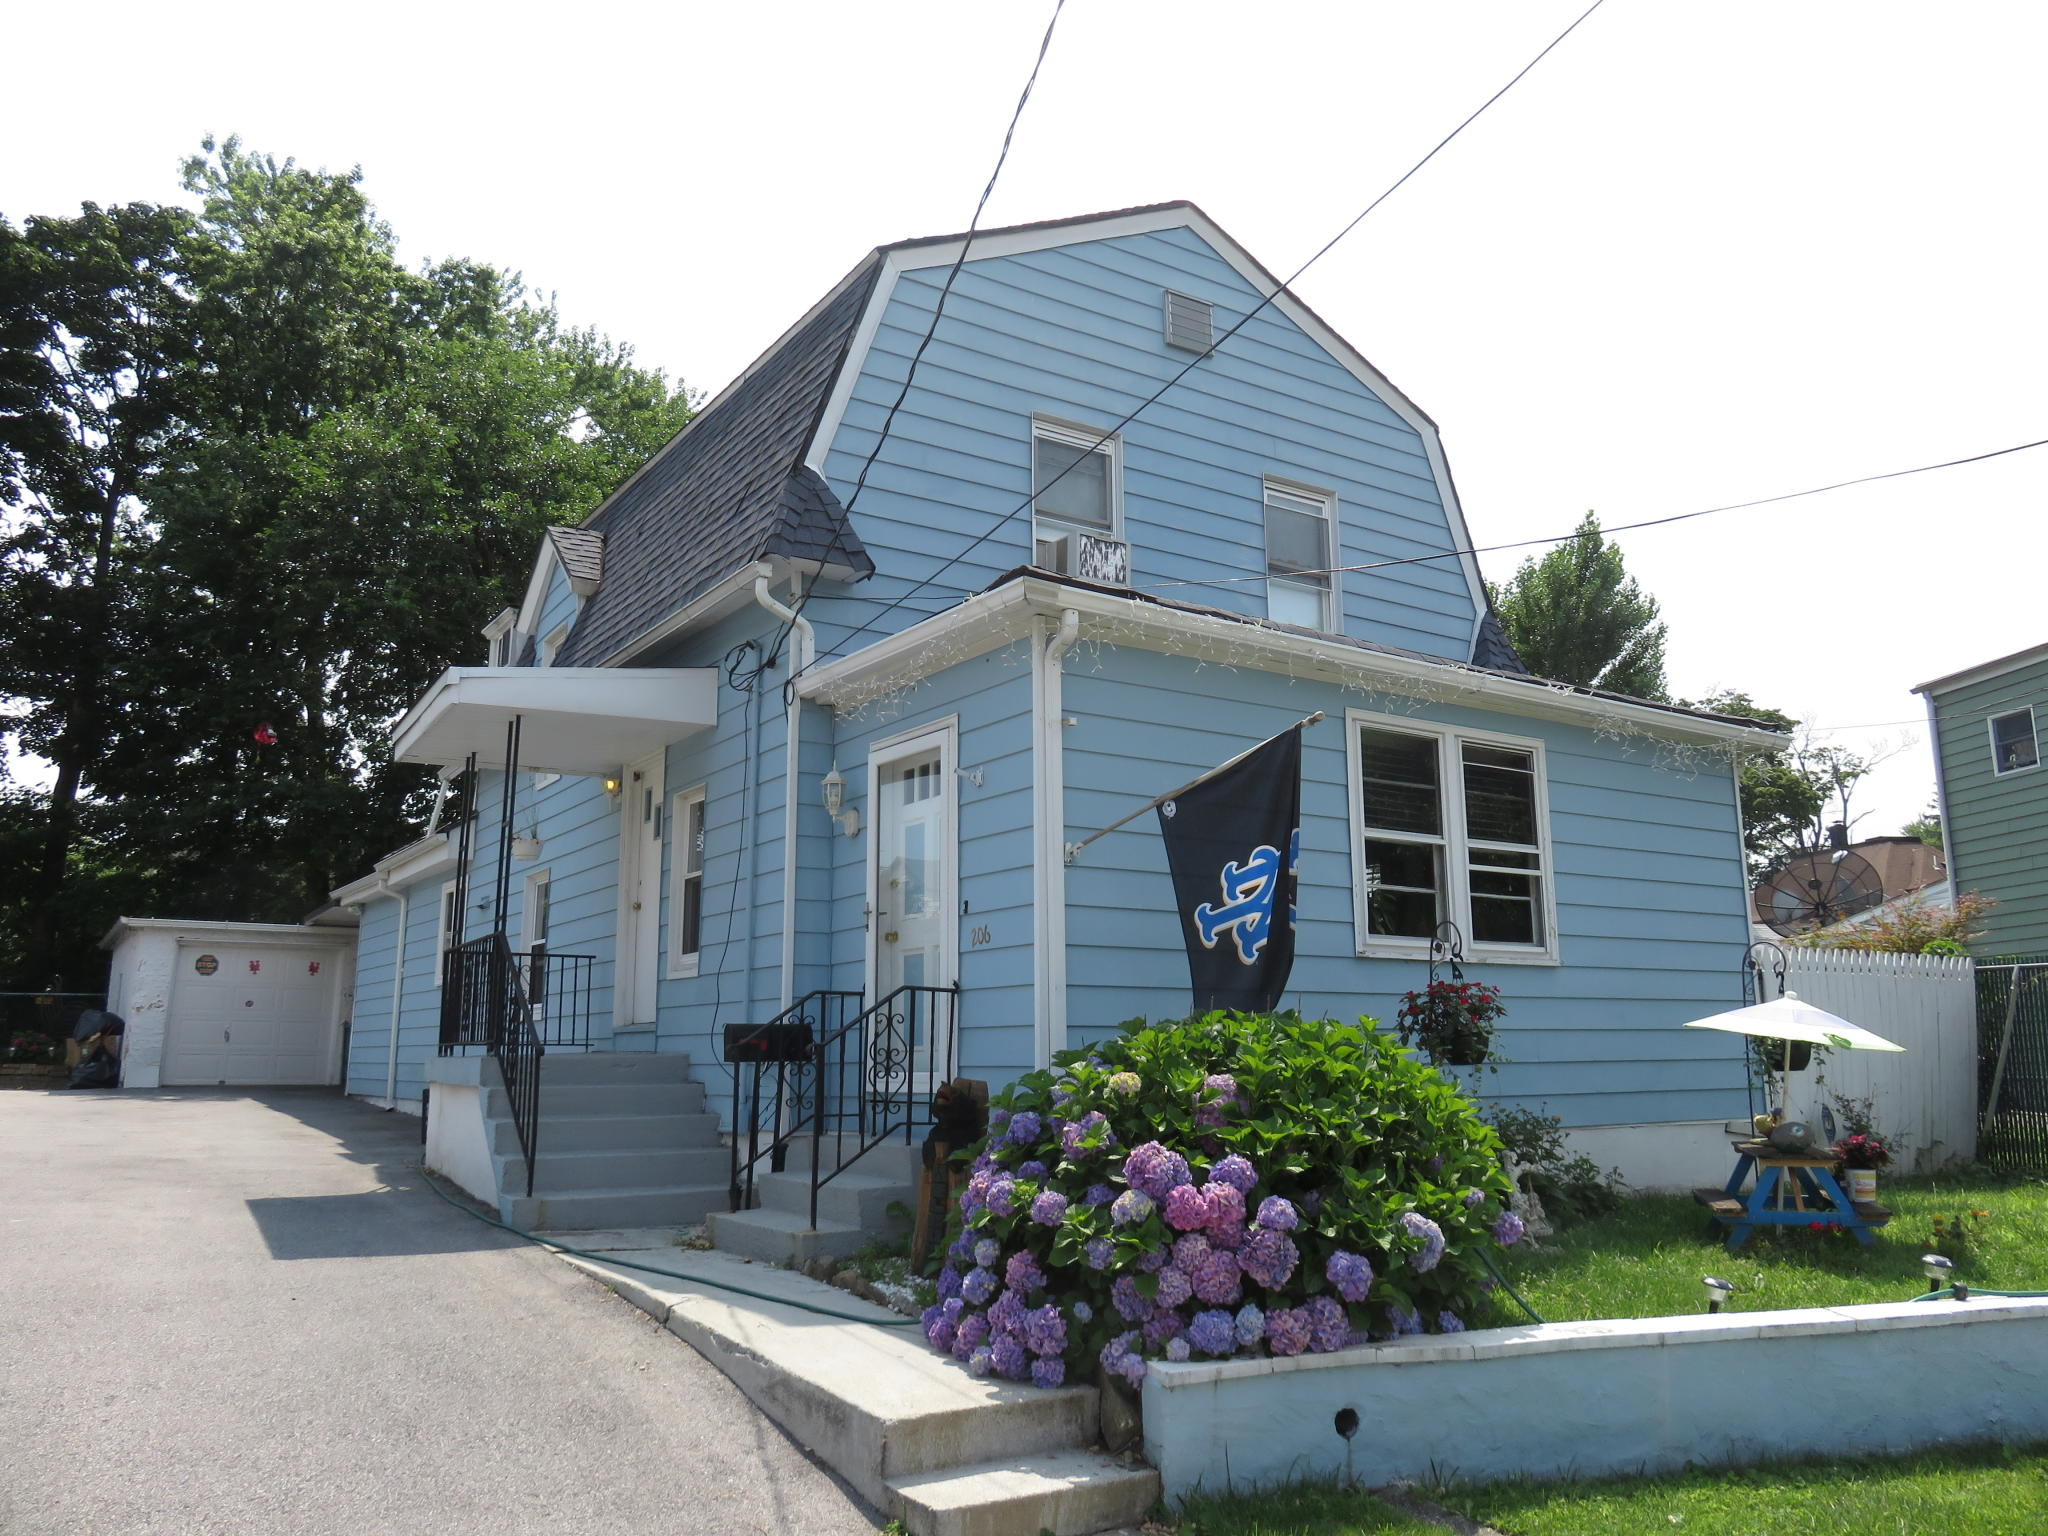 206 Stone Ave, Yonkers, NY 10701 - Estimate and Home Details | Trulia